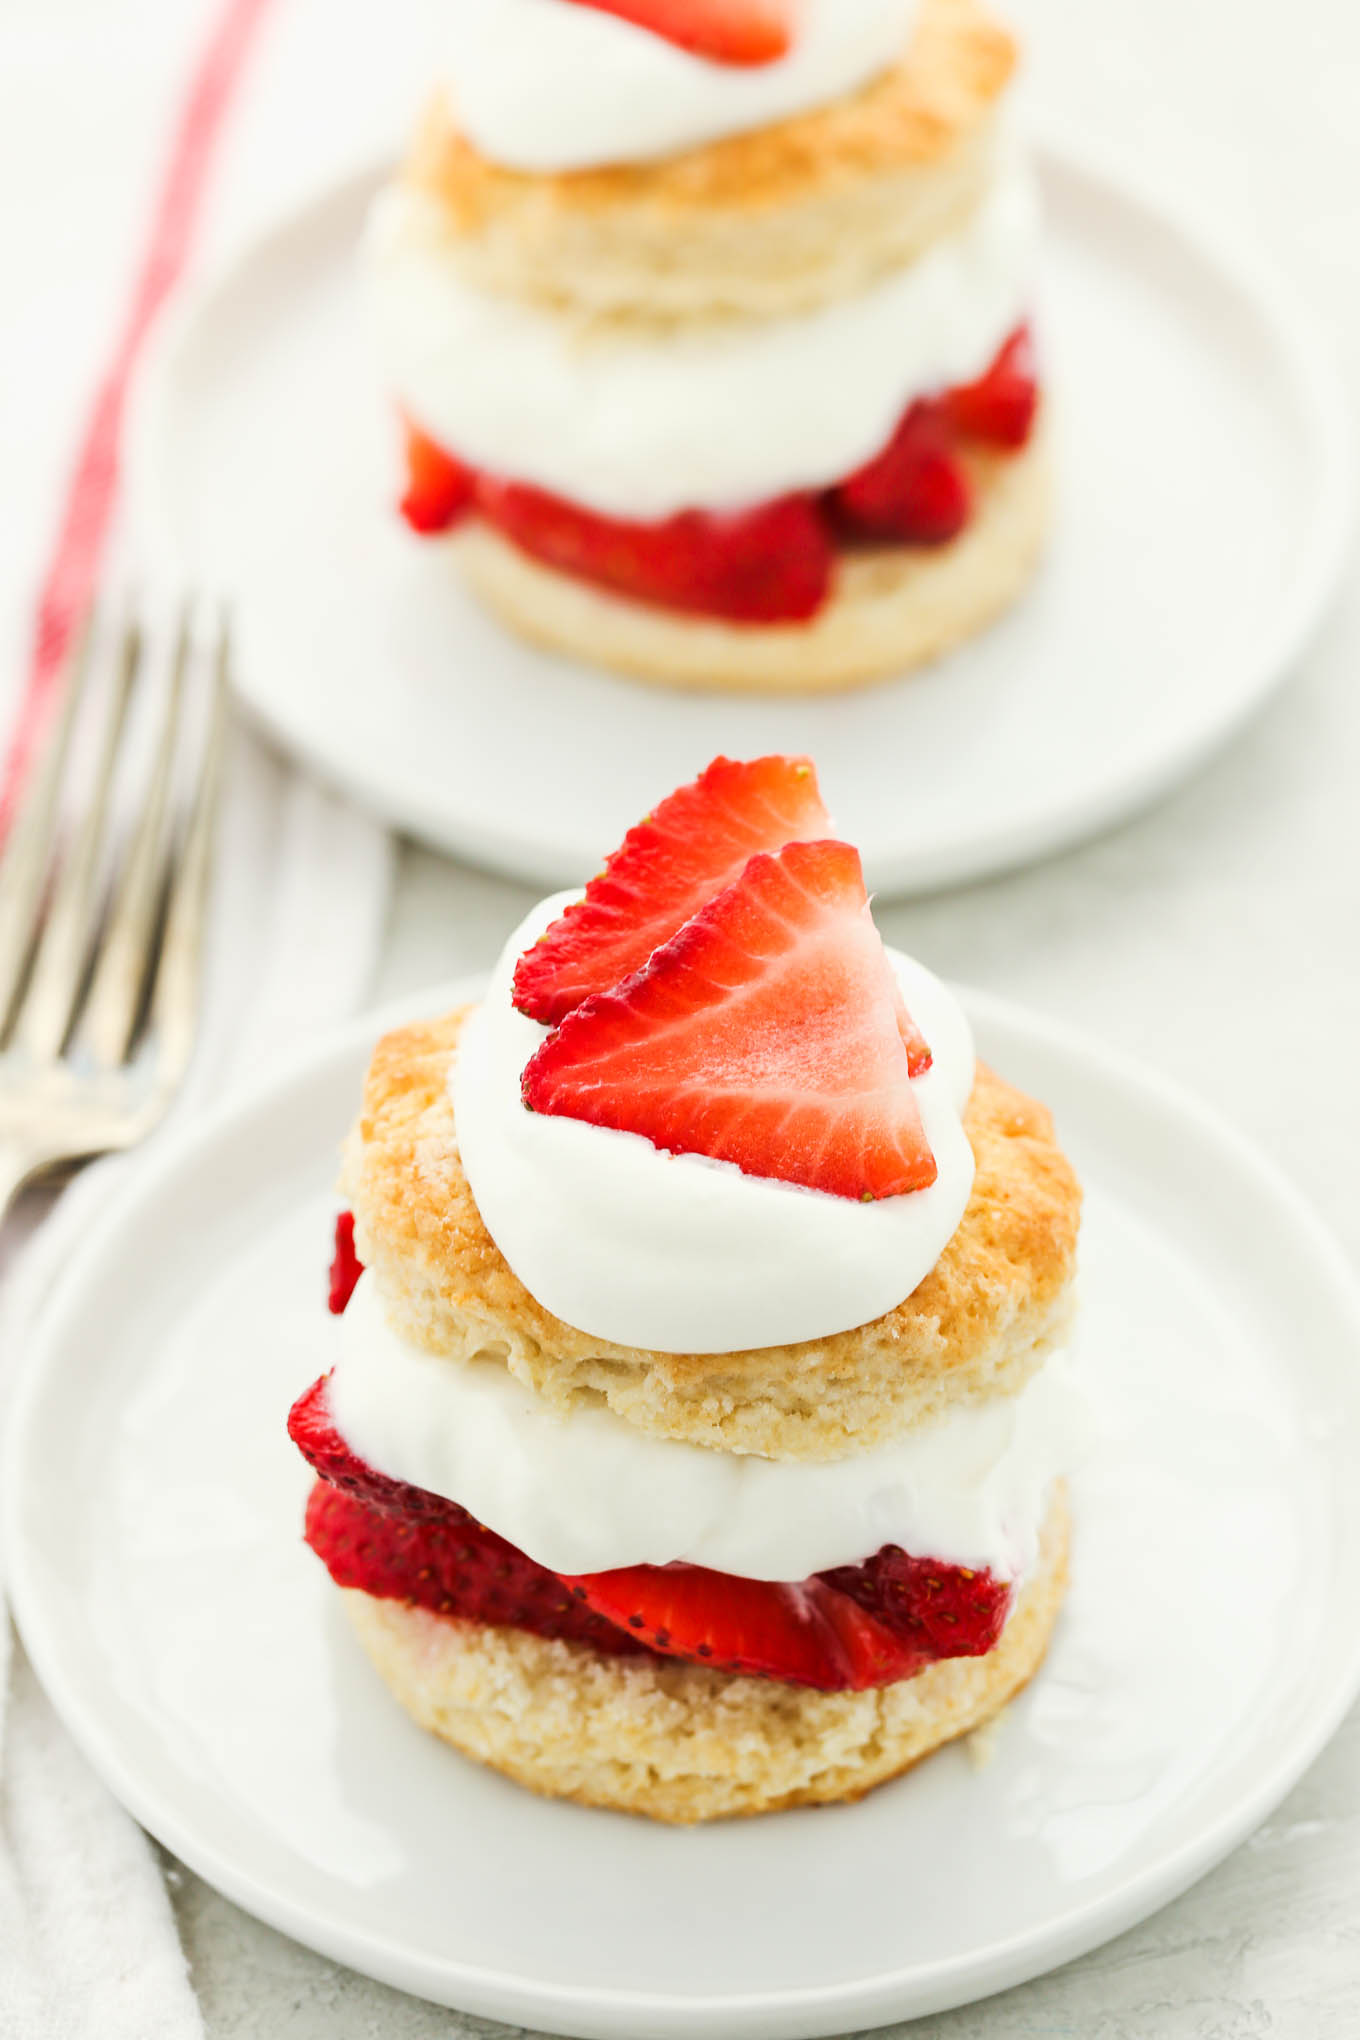 Two prepared strawberry shortcakes topped with extra whipped cream and sliced strawberries on white plates.